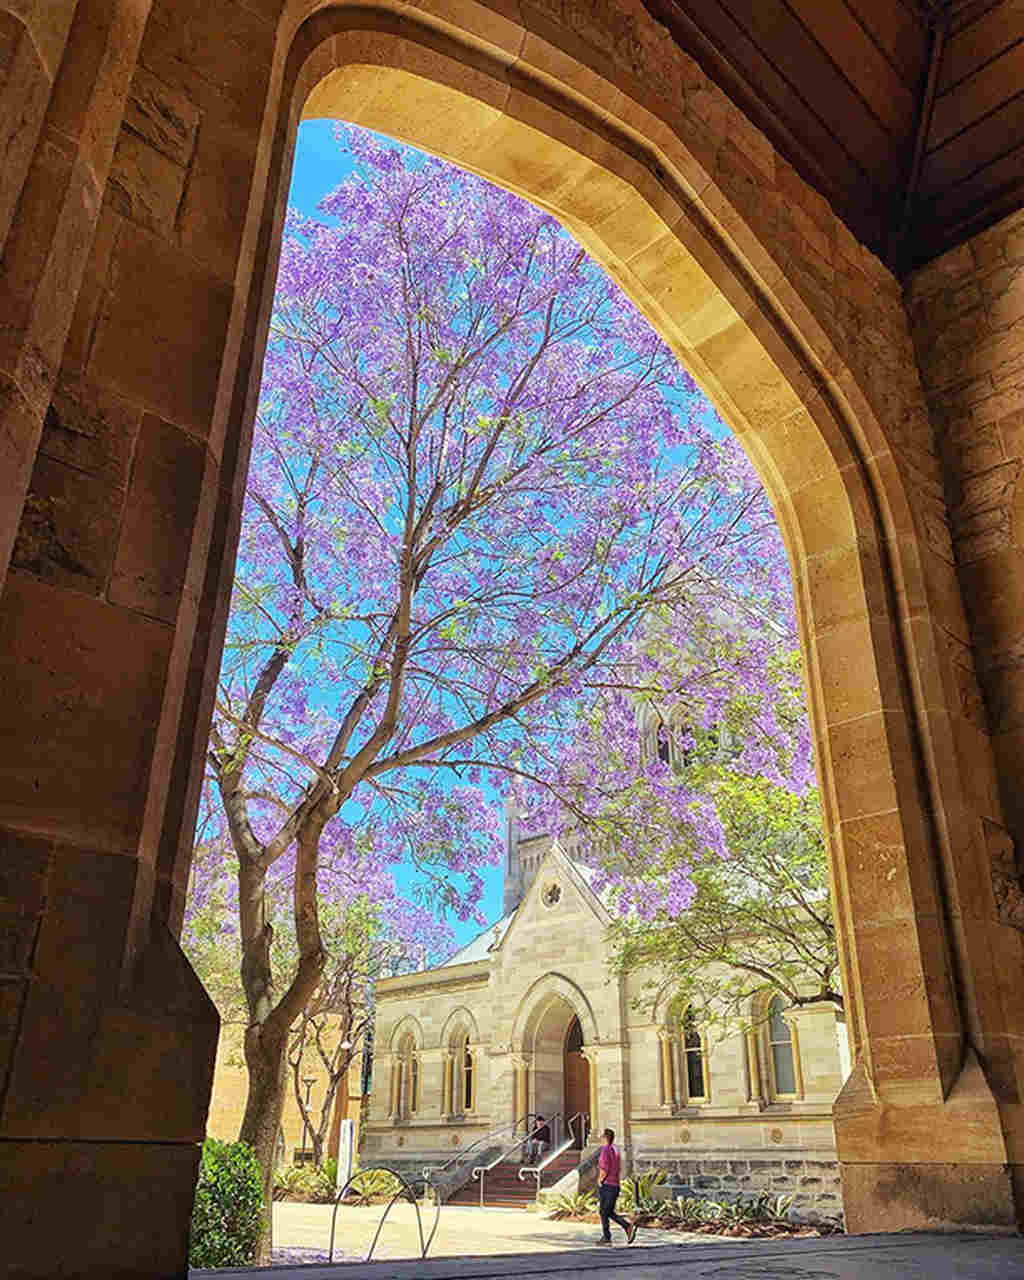 Architecture, Arch, Building, Glass, Window, Chapel, Tree, Place of worship, Medieval architecture, Stained glass